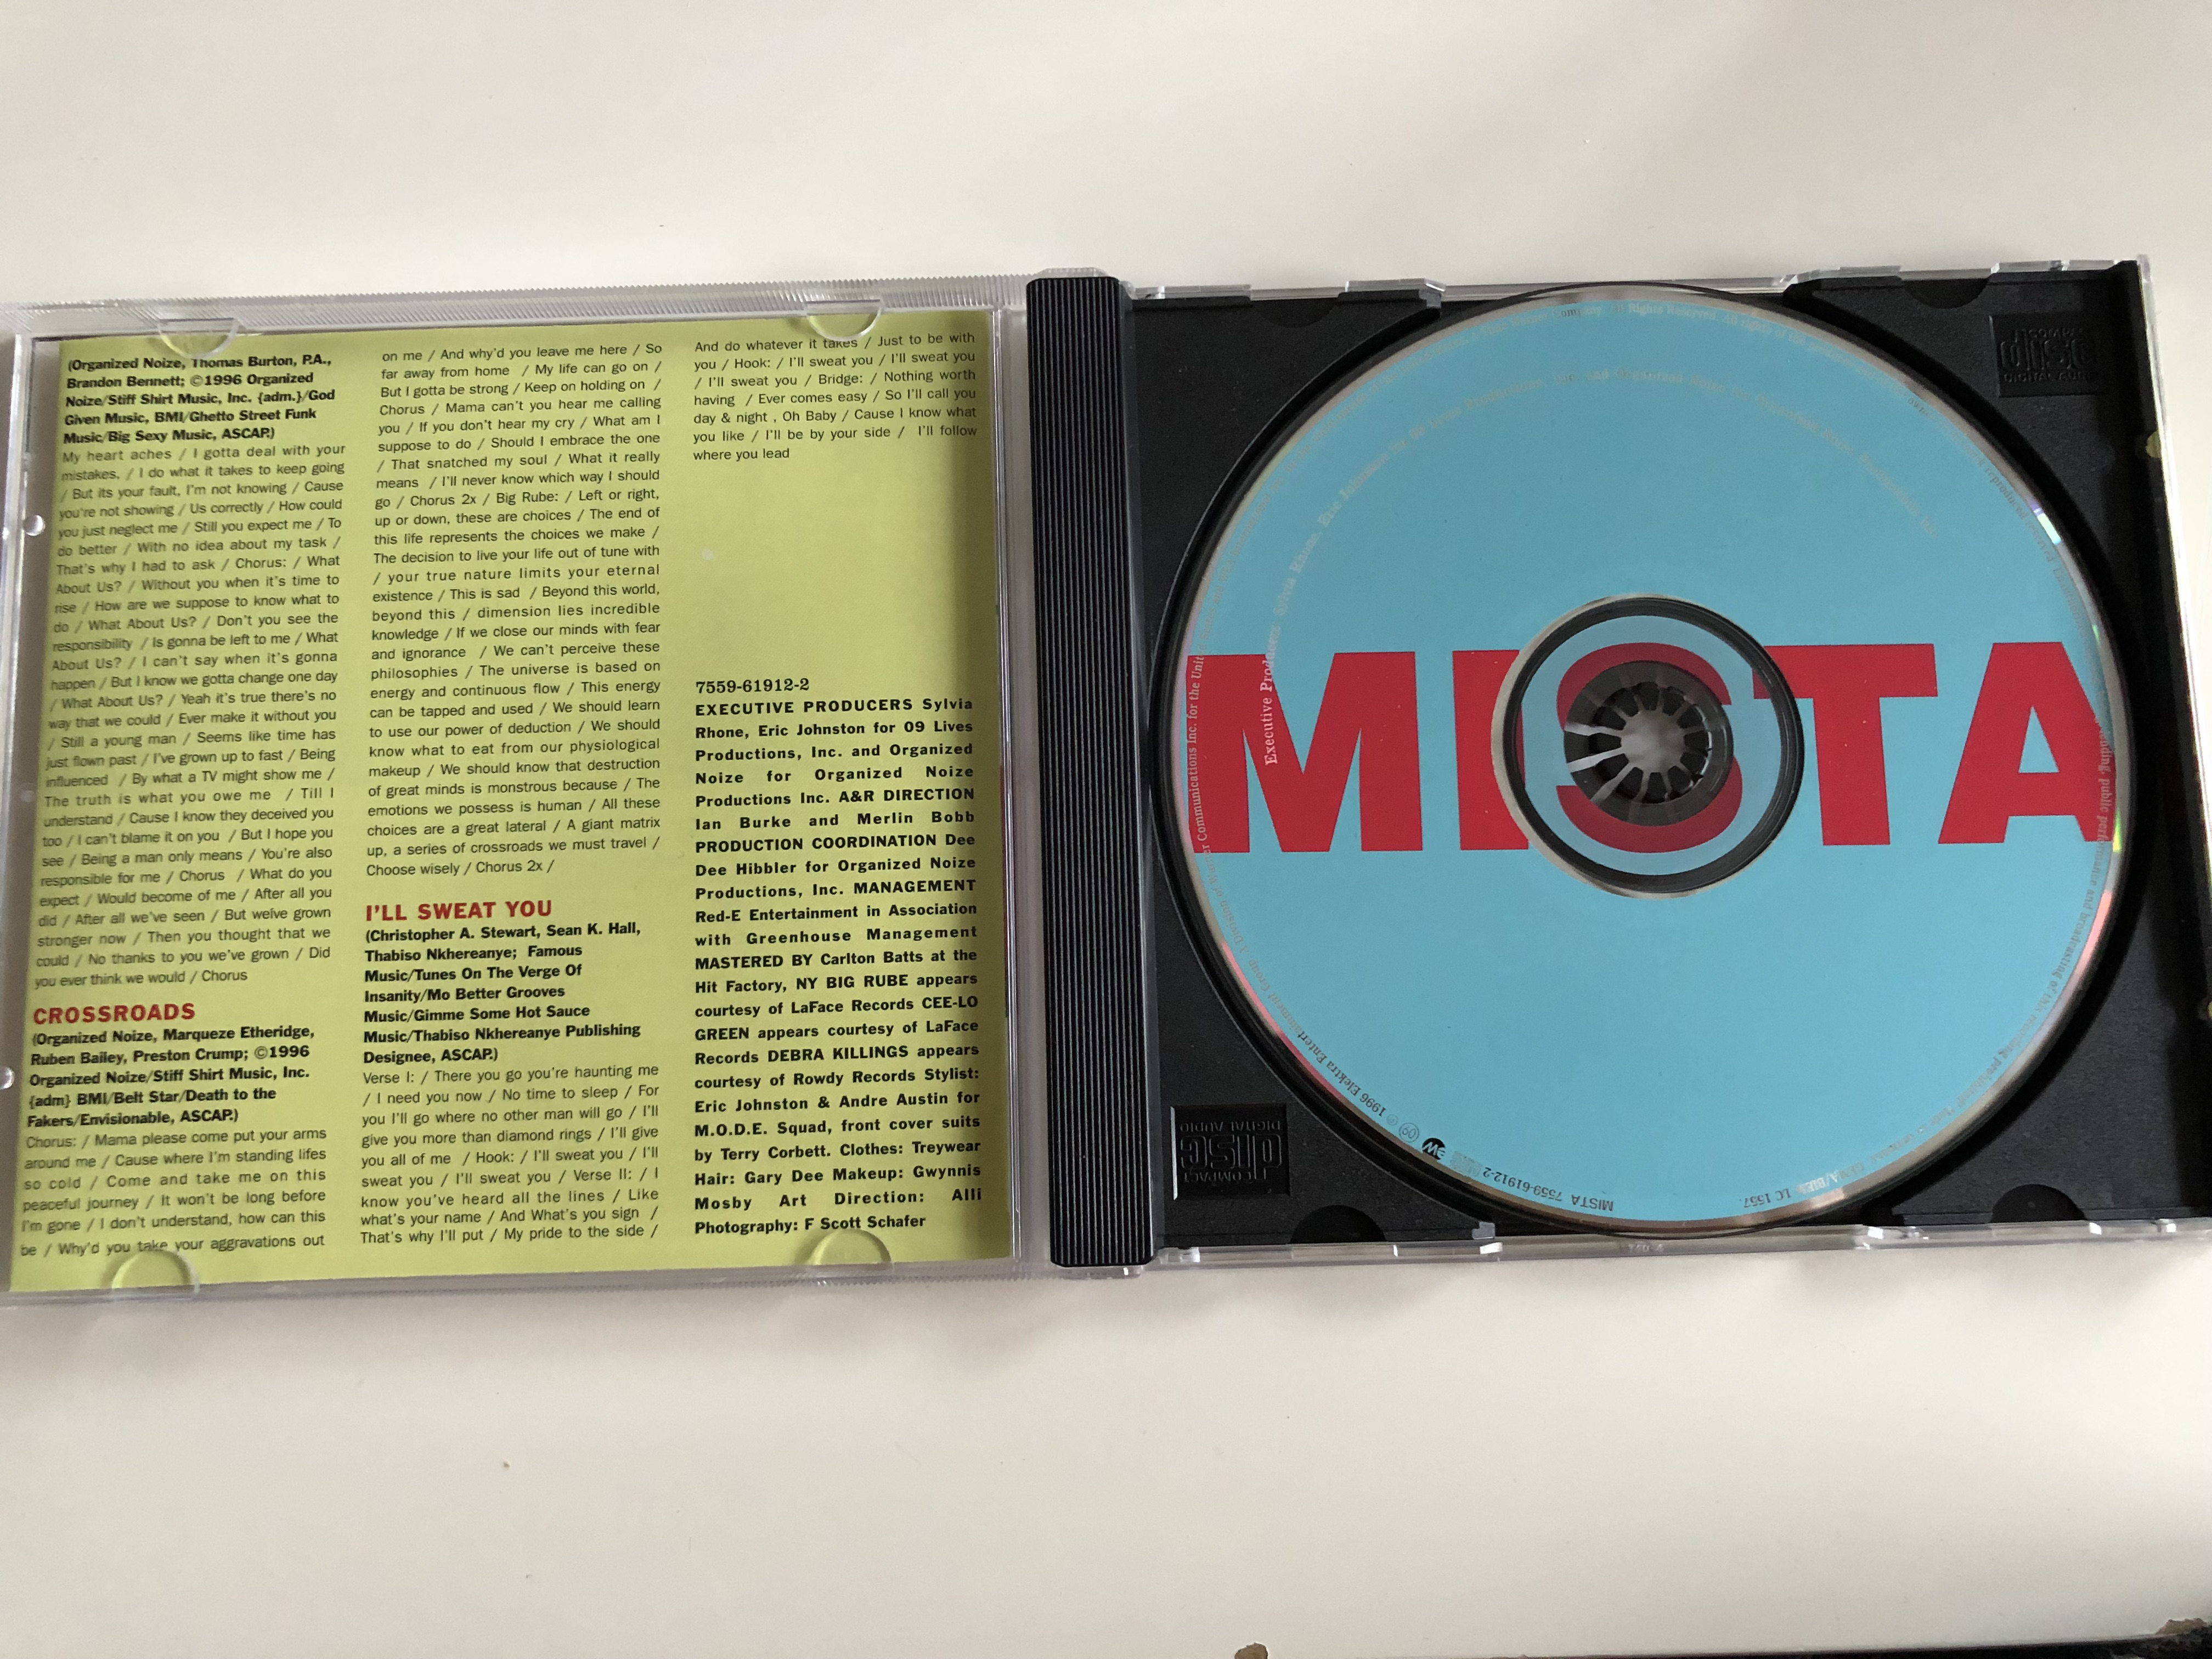 mista-blackberry-molasses-fresh-groove-things-you-do-audio-cd-1996-3-.jpg